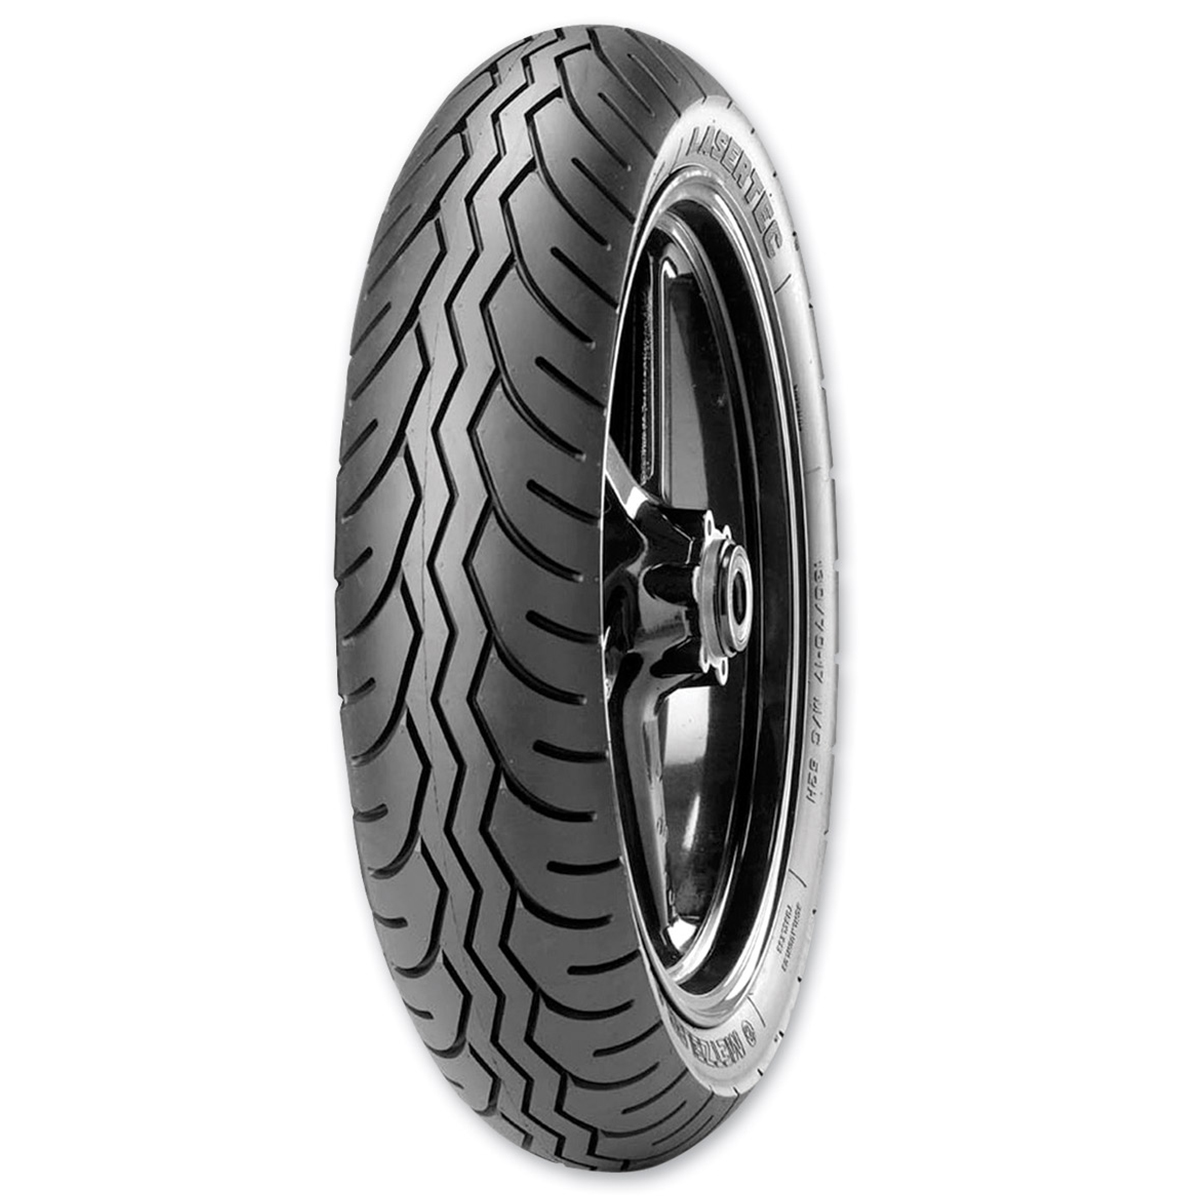 Metzeler Lasertec 130/70 17 Tubeless Rear Two-Wheeler Tyre